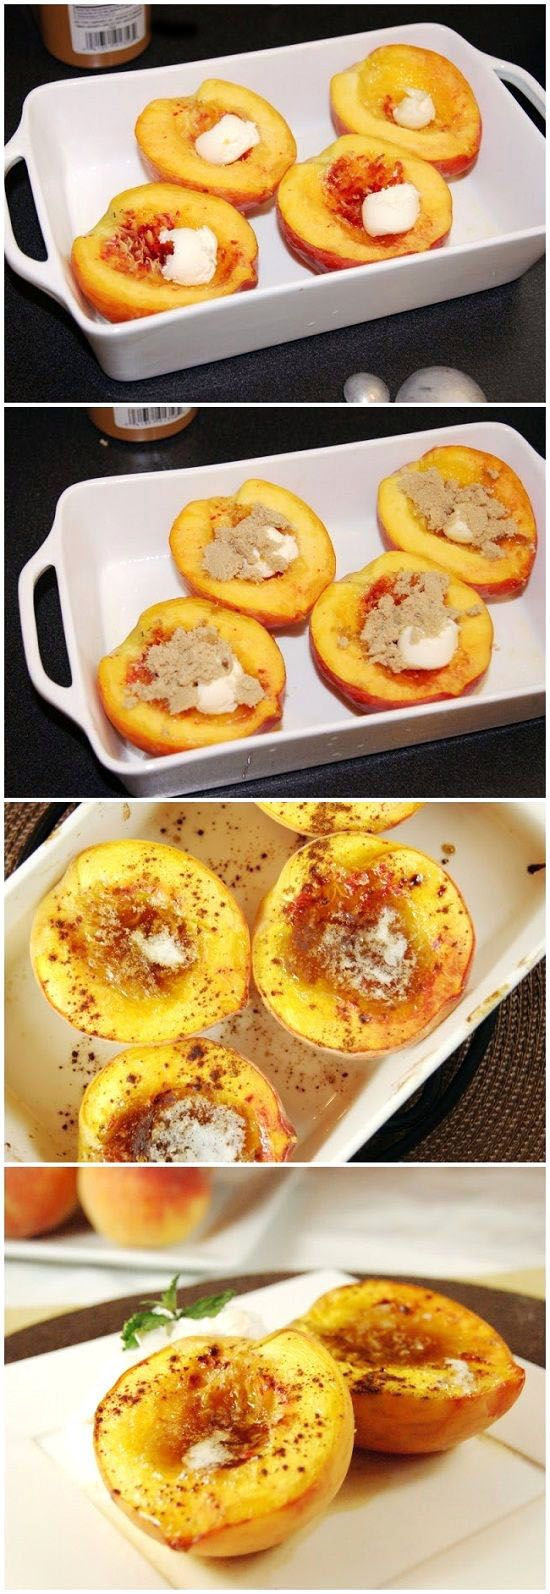 Brown Sugar Baked Peaches. 1 fresh peach 1 tsp. unsalted butter, divided 2 to 4 tsp. brown sugar, divided Sprinkling of ground cinnamon, to taste Directions 1. Halve peaches and remove pit. Place in baking dish, skin side down. 2. Place 1/2 teaspoon butter in the hollow of each peach, top each peach half with 1 or 2 teaspoons brown sugar, and sprinkle with cinnamon. 3. Bake at 375 degrees until peaches are tender, about 30 minutes. Serve warm.